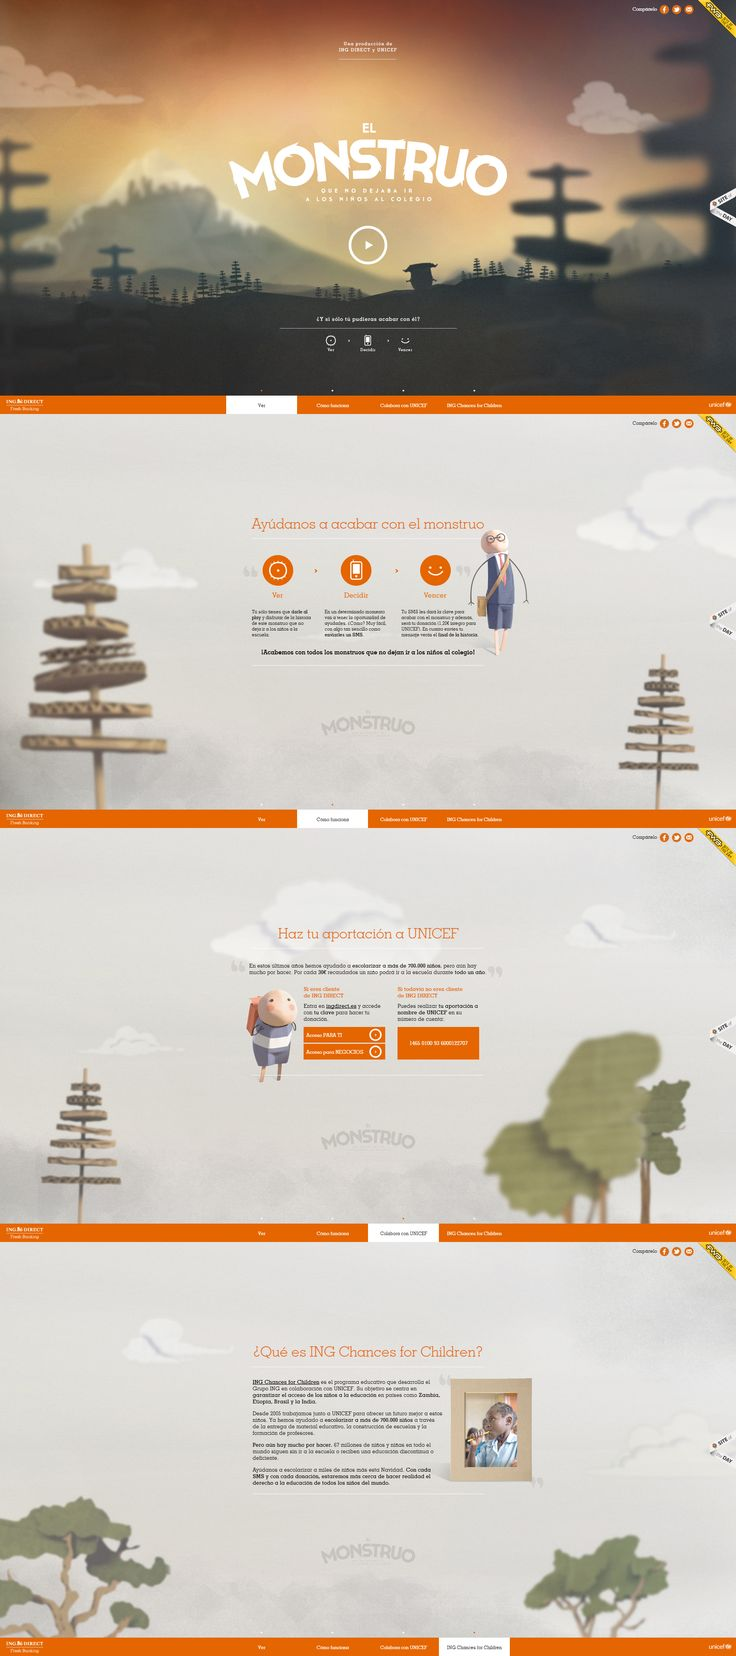 Monstruo | #webdesign #it #web #design #layout #userinterface #website #webdesign < repinned by www.BlickeDeeler.de | Take a look at www.WebsiteDesign-Hamburg.de - Tjorven Granqvist